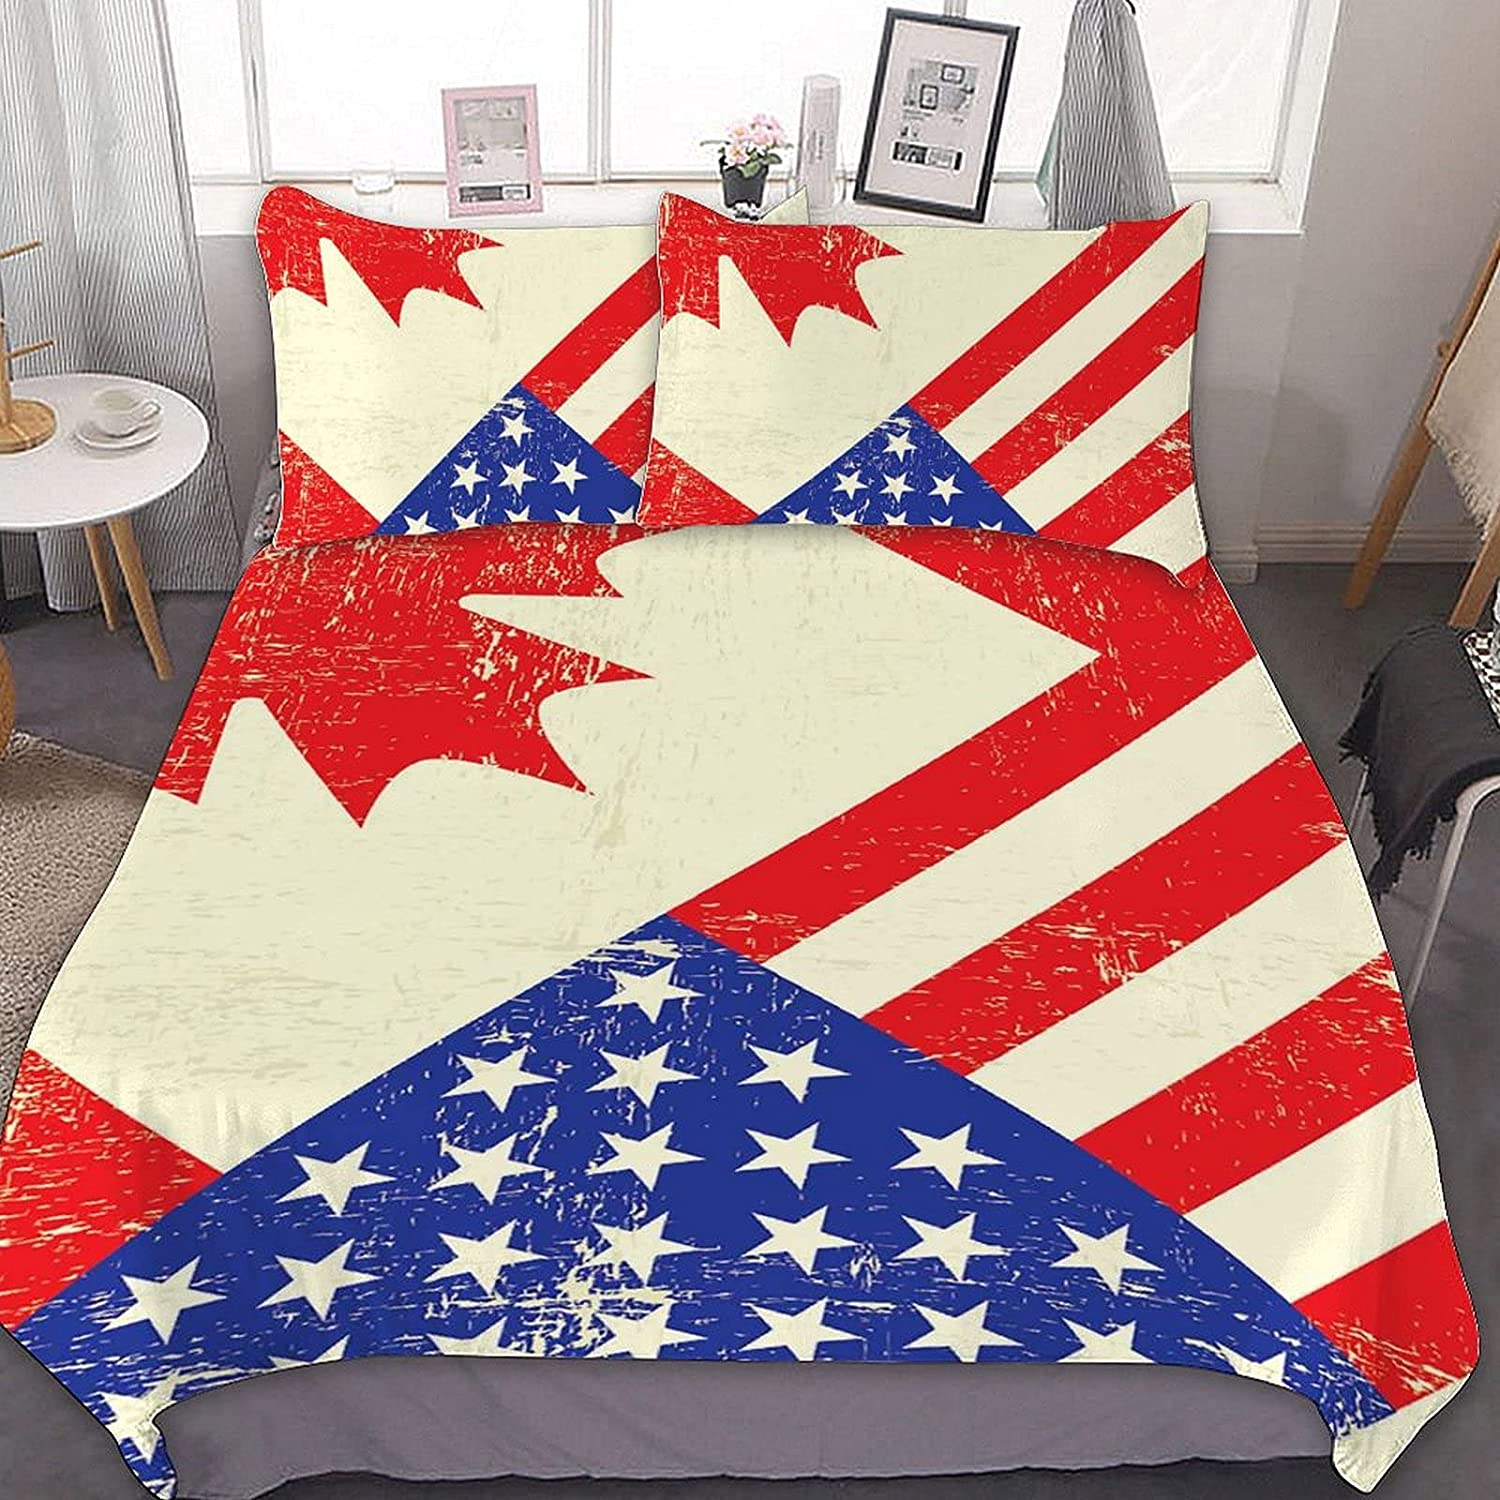 PNNUO Canada USA Flag Queen Bed King New York Mall 5 ☆ very popular Set Comforte Full Size Twin